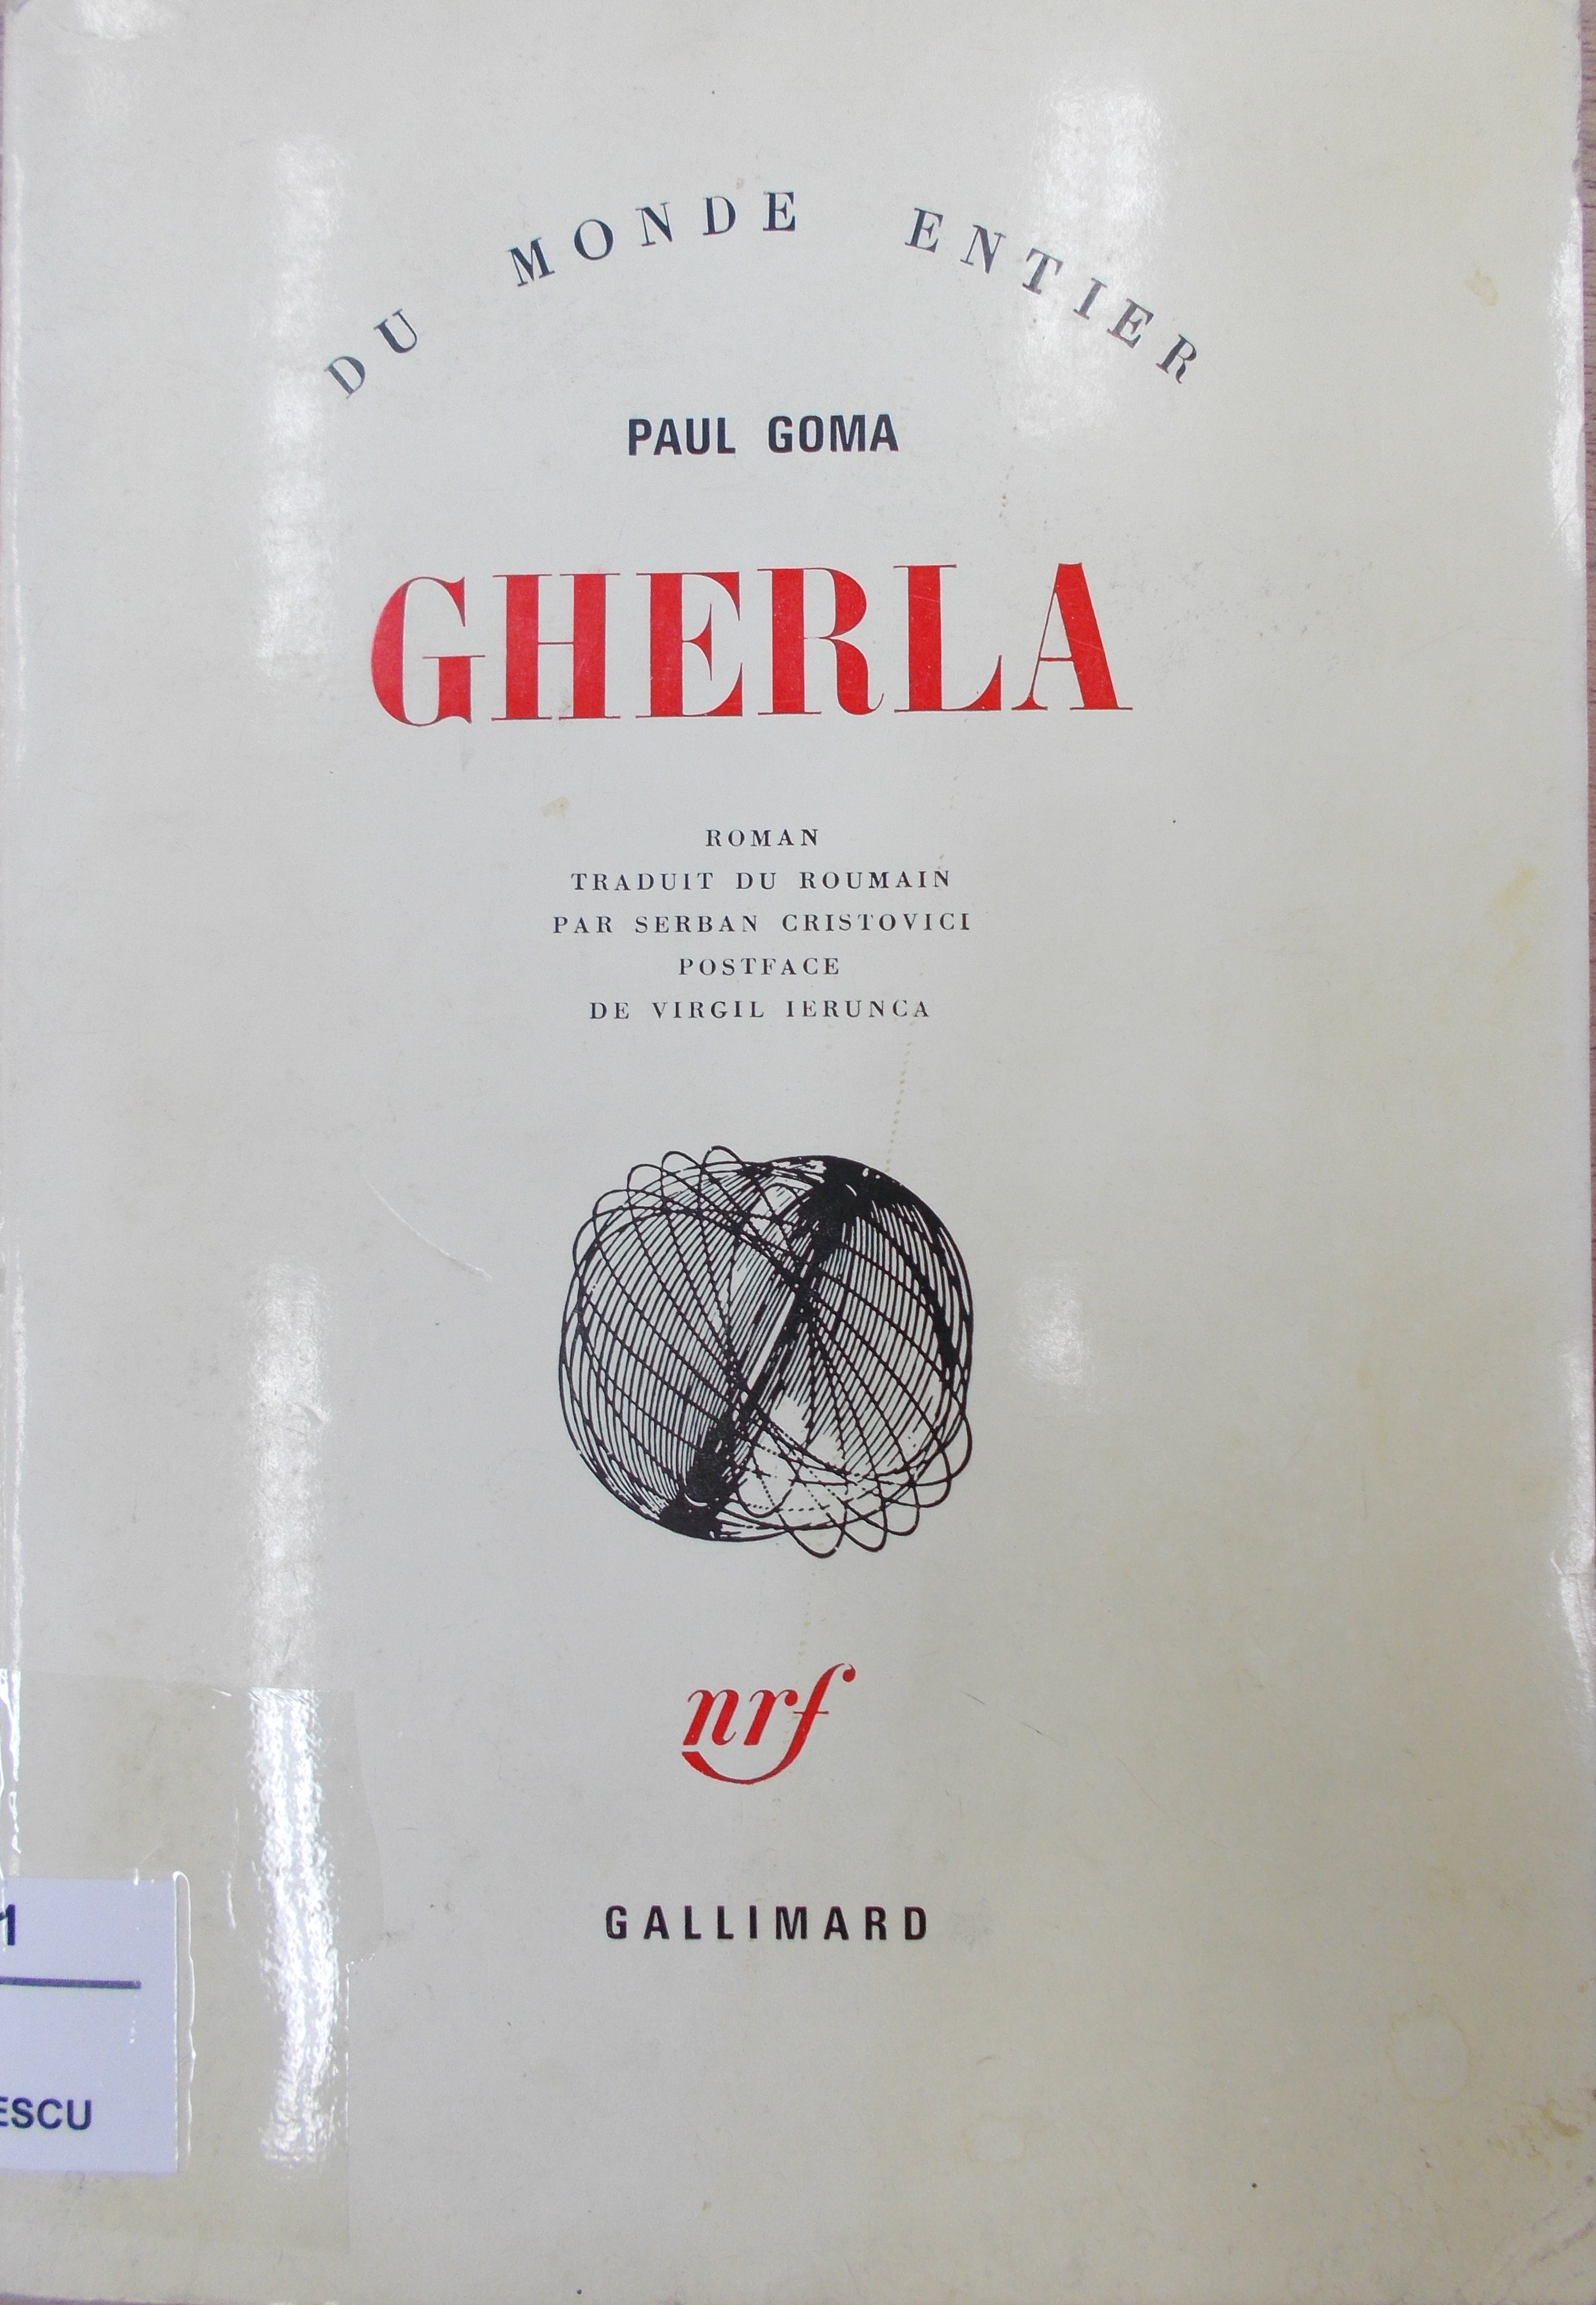 Front cover of the book Gherla by Paul Goma